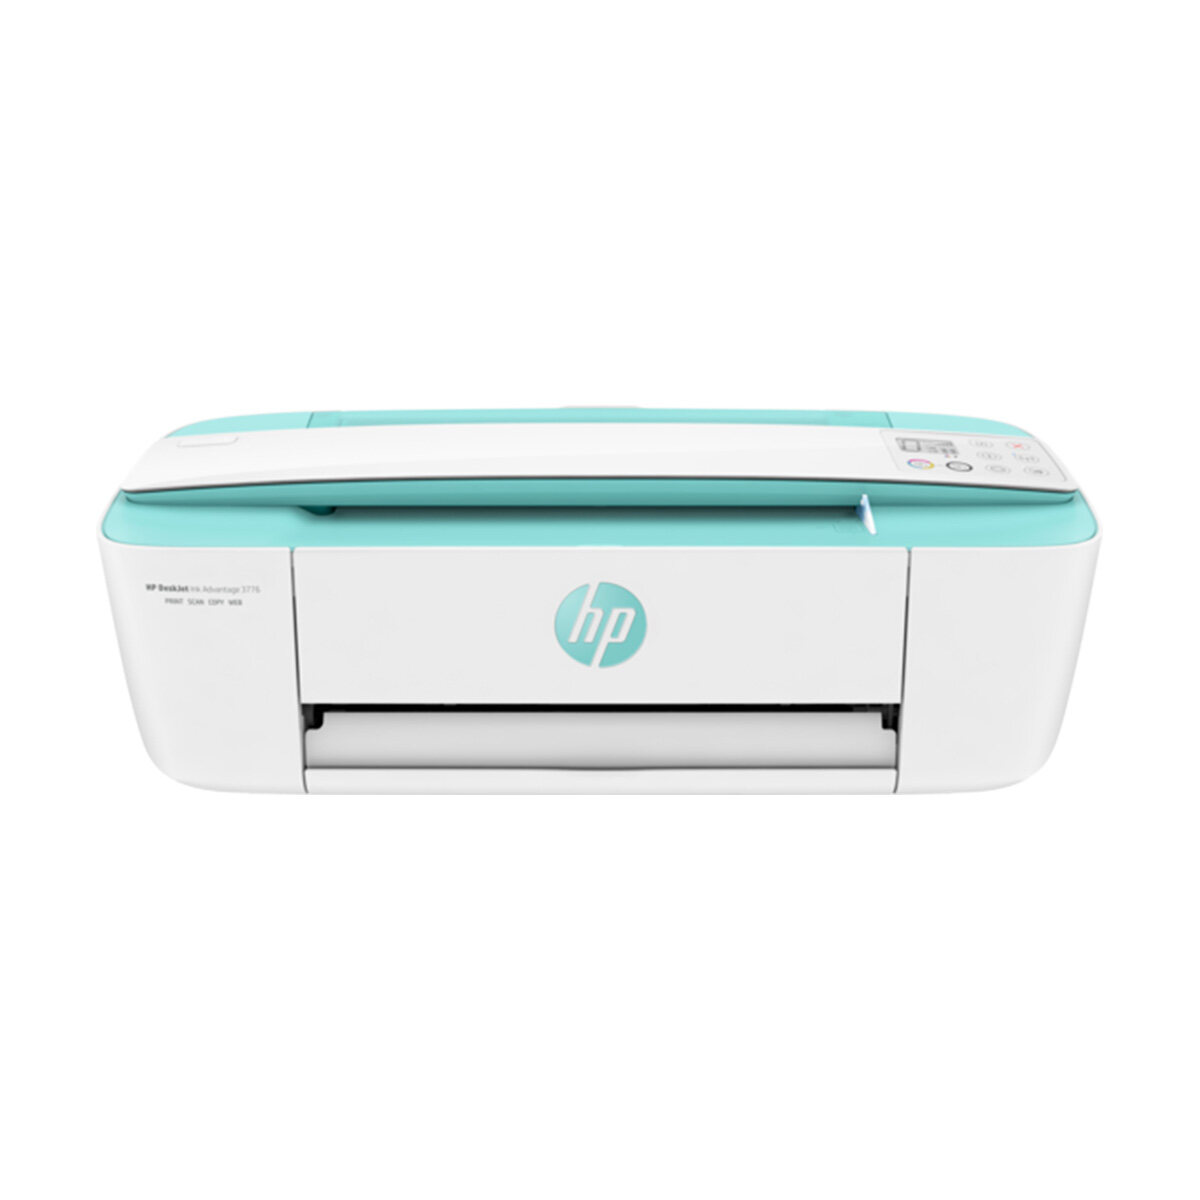 HP DESKJET INK ADVANTAGE 3776 ALL-IN-ONE PRINTER PRINT SCAN COPY WIRELESS 3 Years Onsite Warranty with 1-to-1 Unit exchange **NEED TO ONLINE REGISTER**